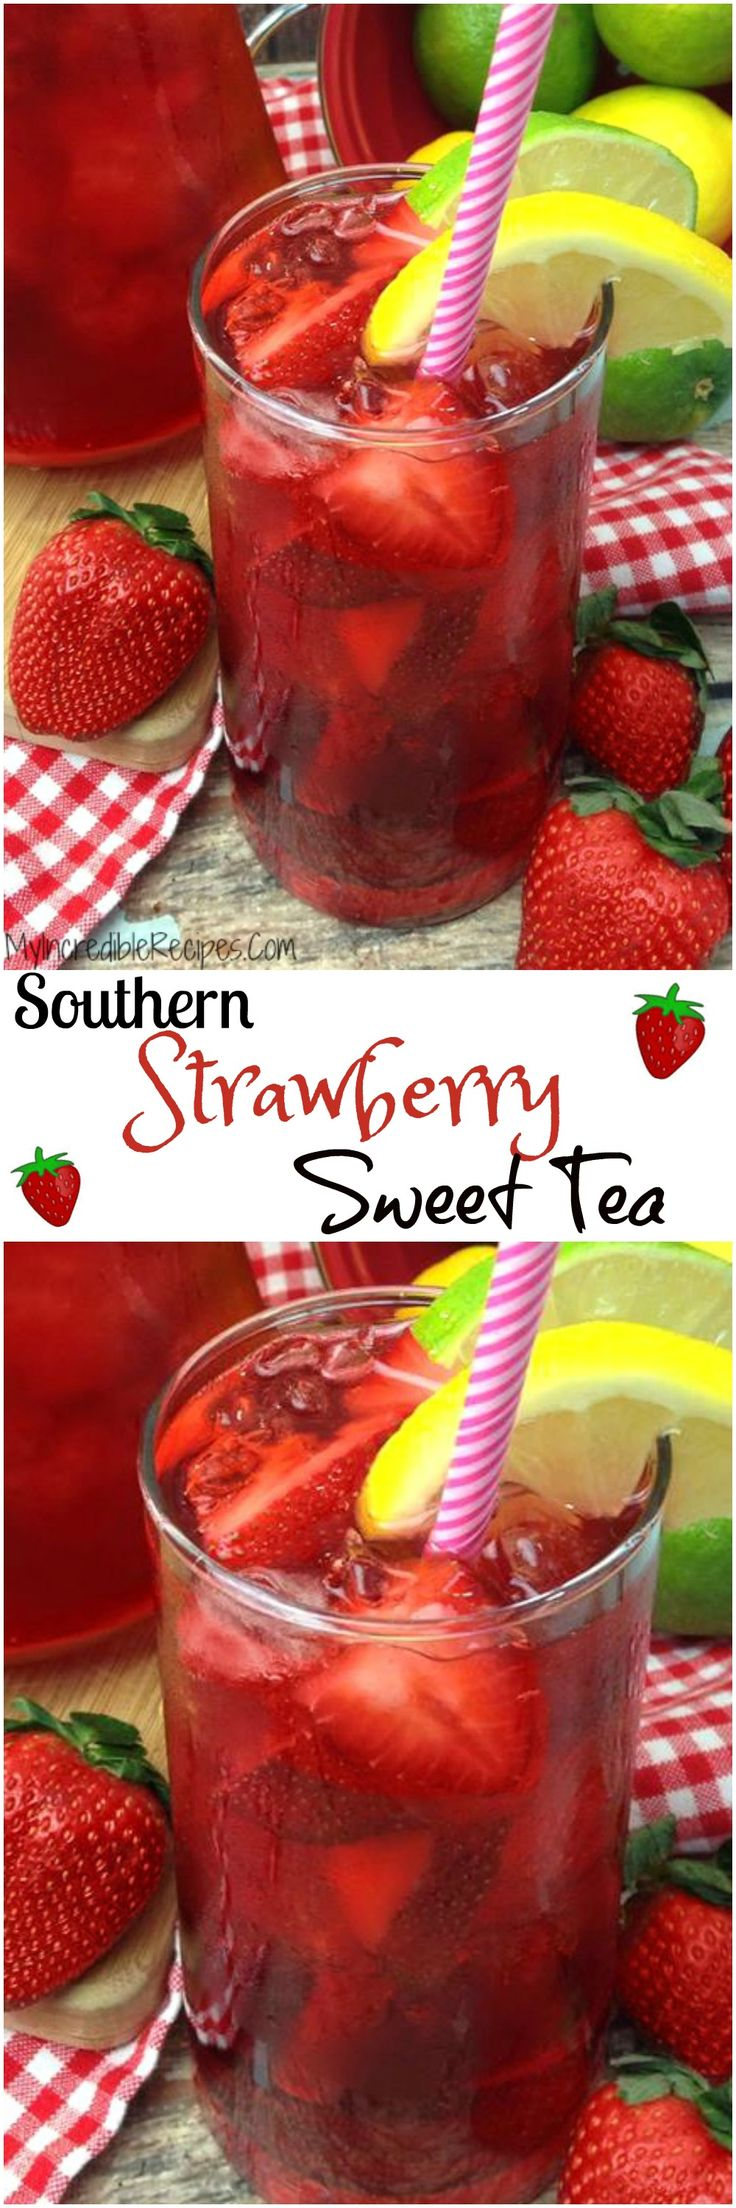 Southern Strawberry Sweet Tea! image on RecipesHeaven.com